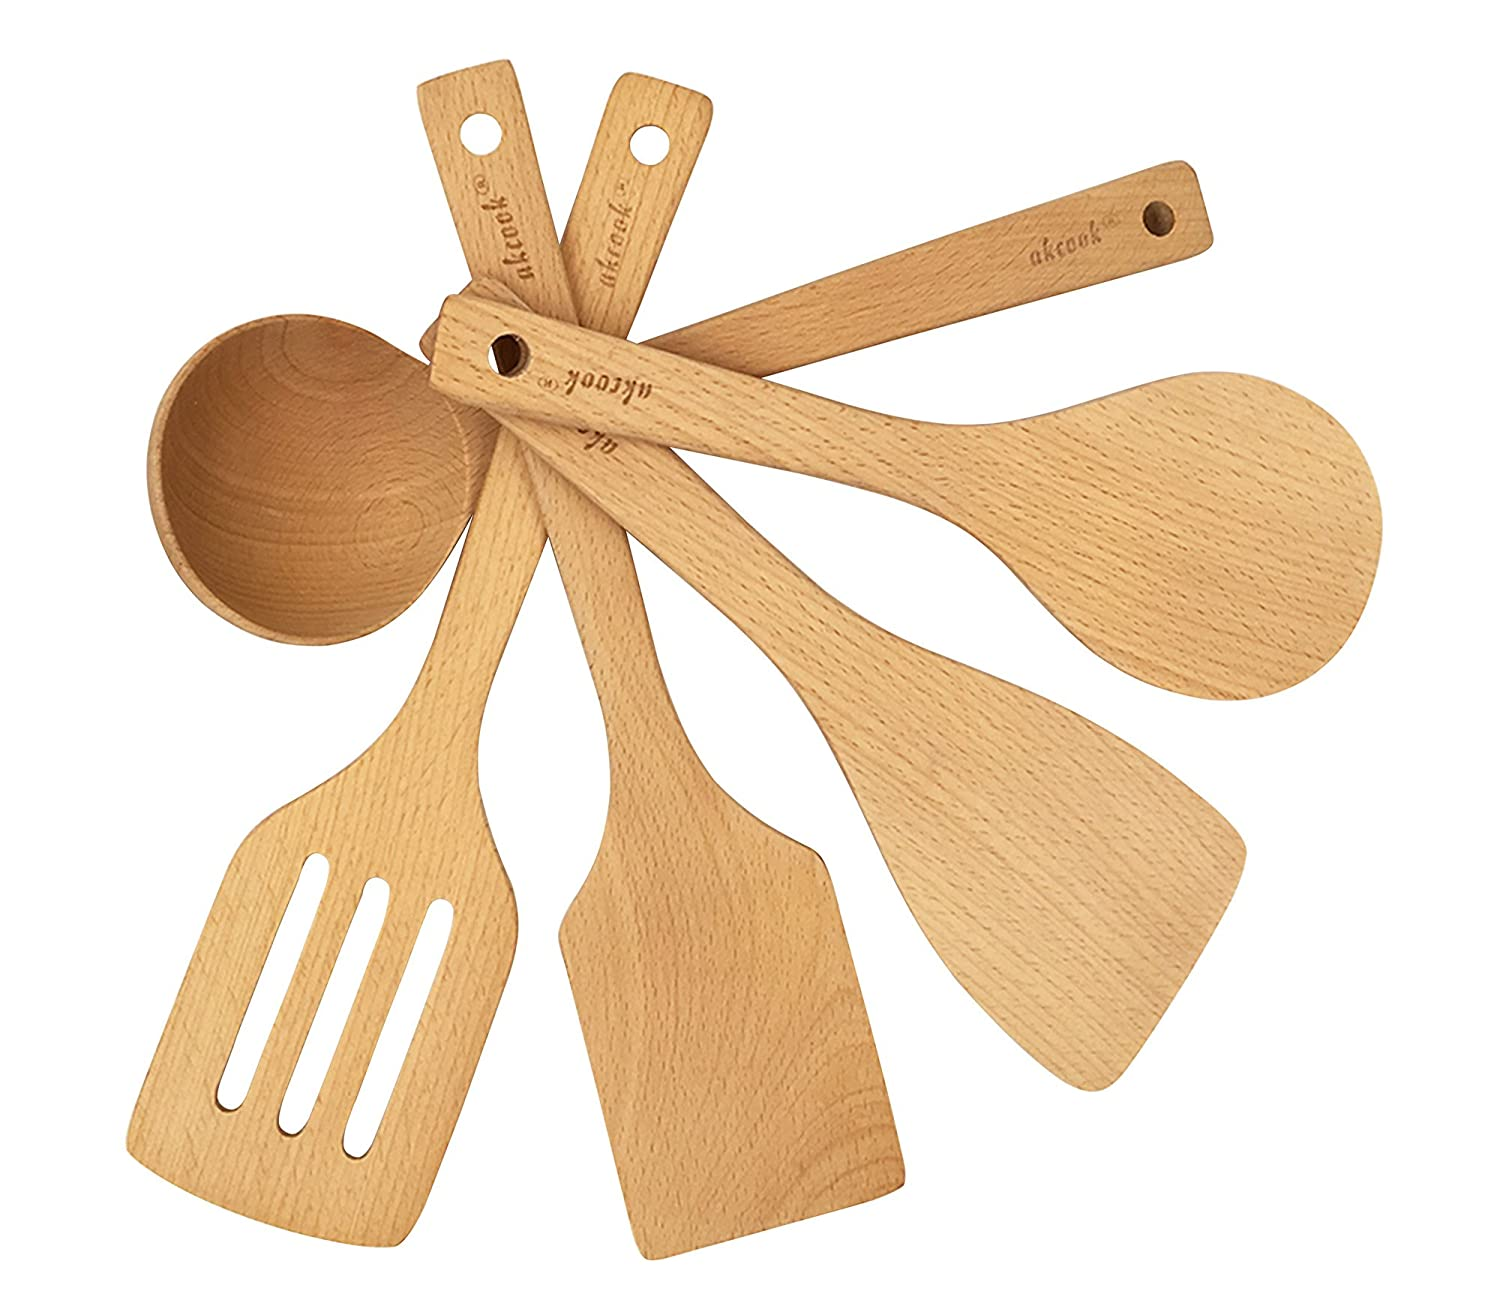 AKcook 5-Piece Cooking Tools Set, Wood Kitchen Utensils, Turner Spatula Ladle BOBZYXL COMINHKPR122630